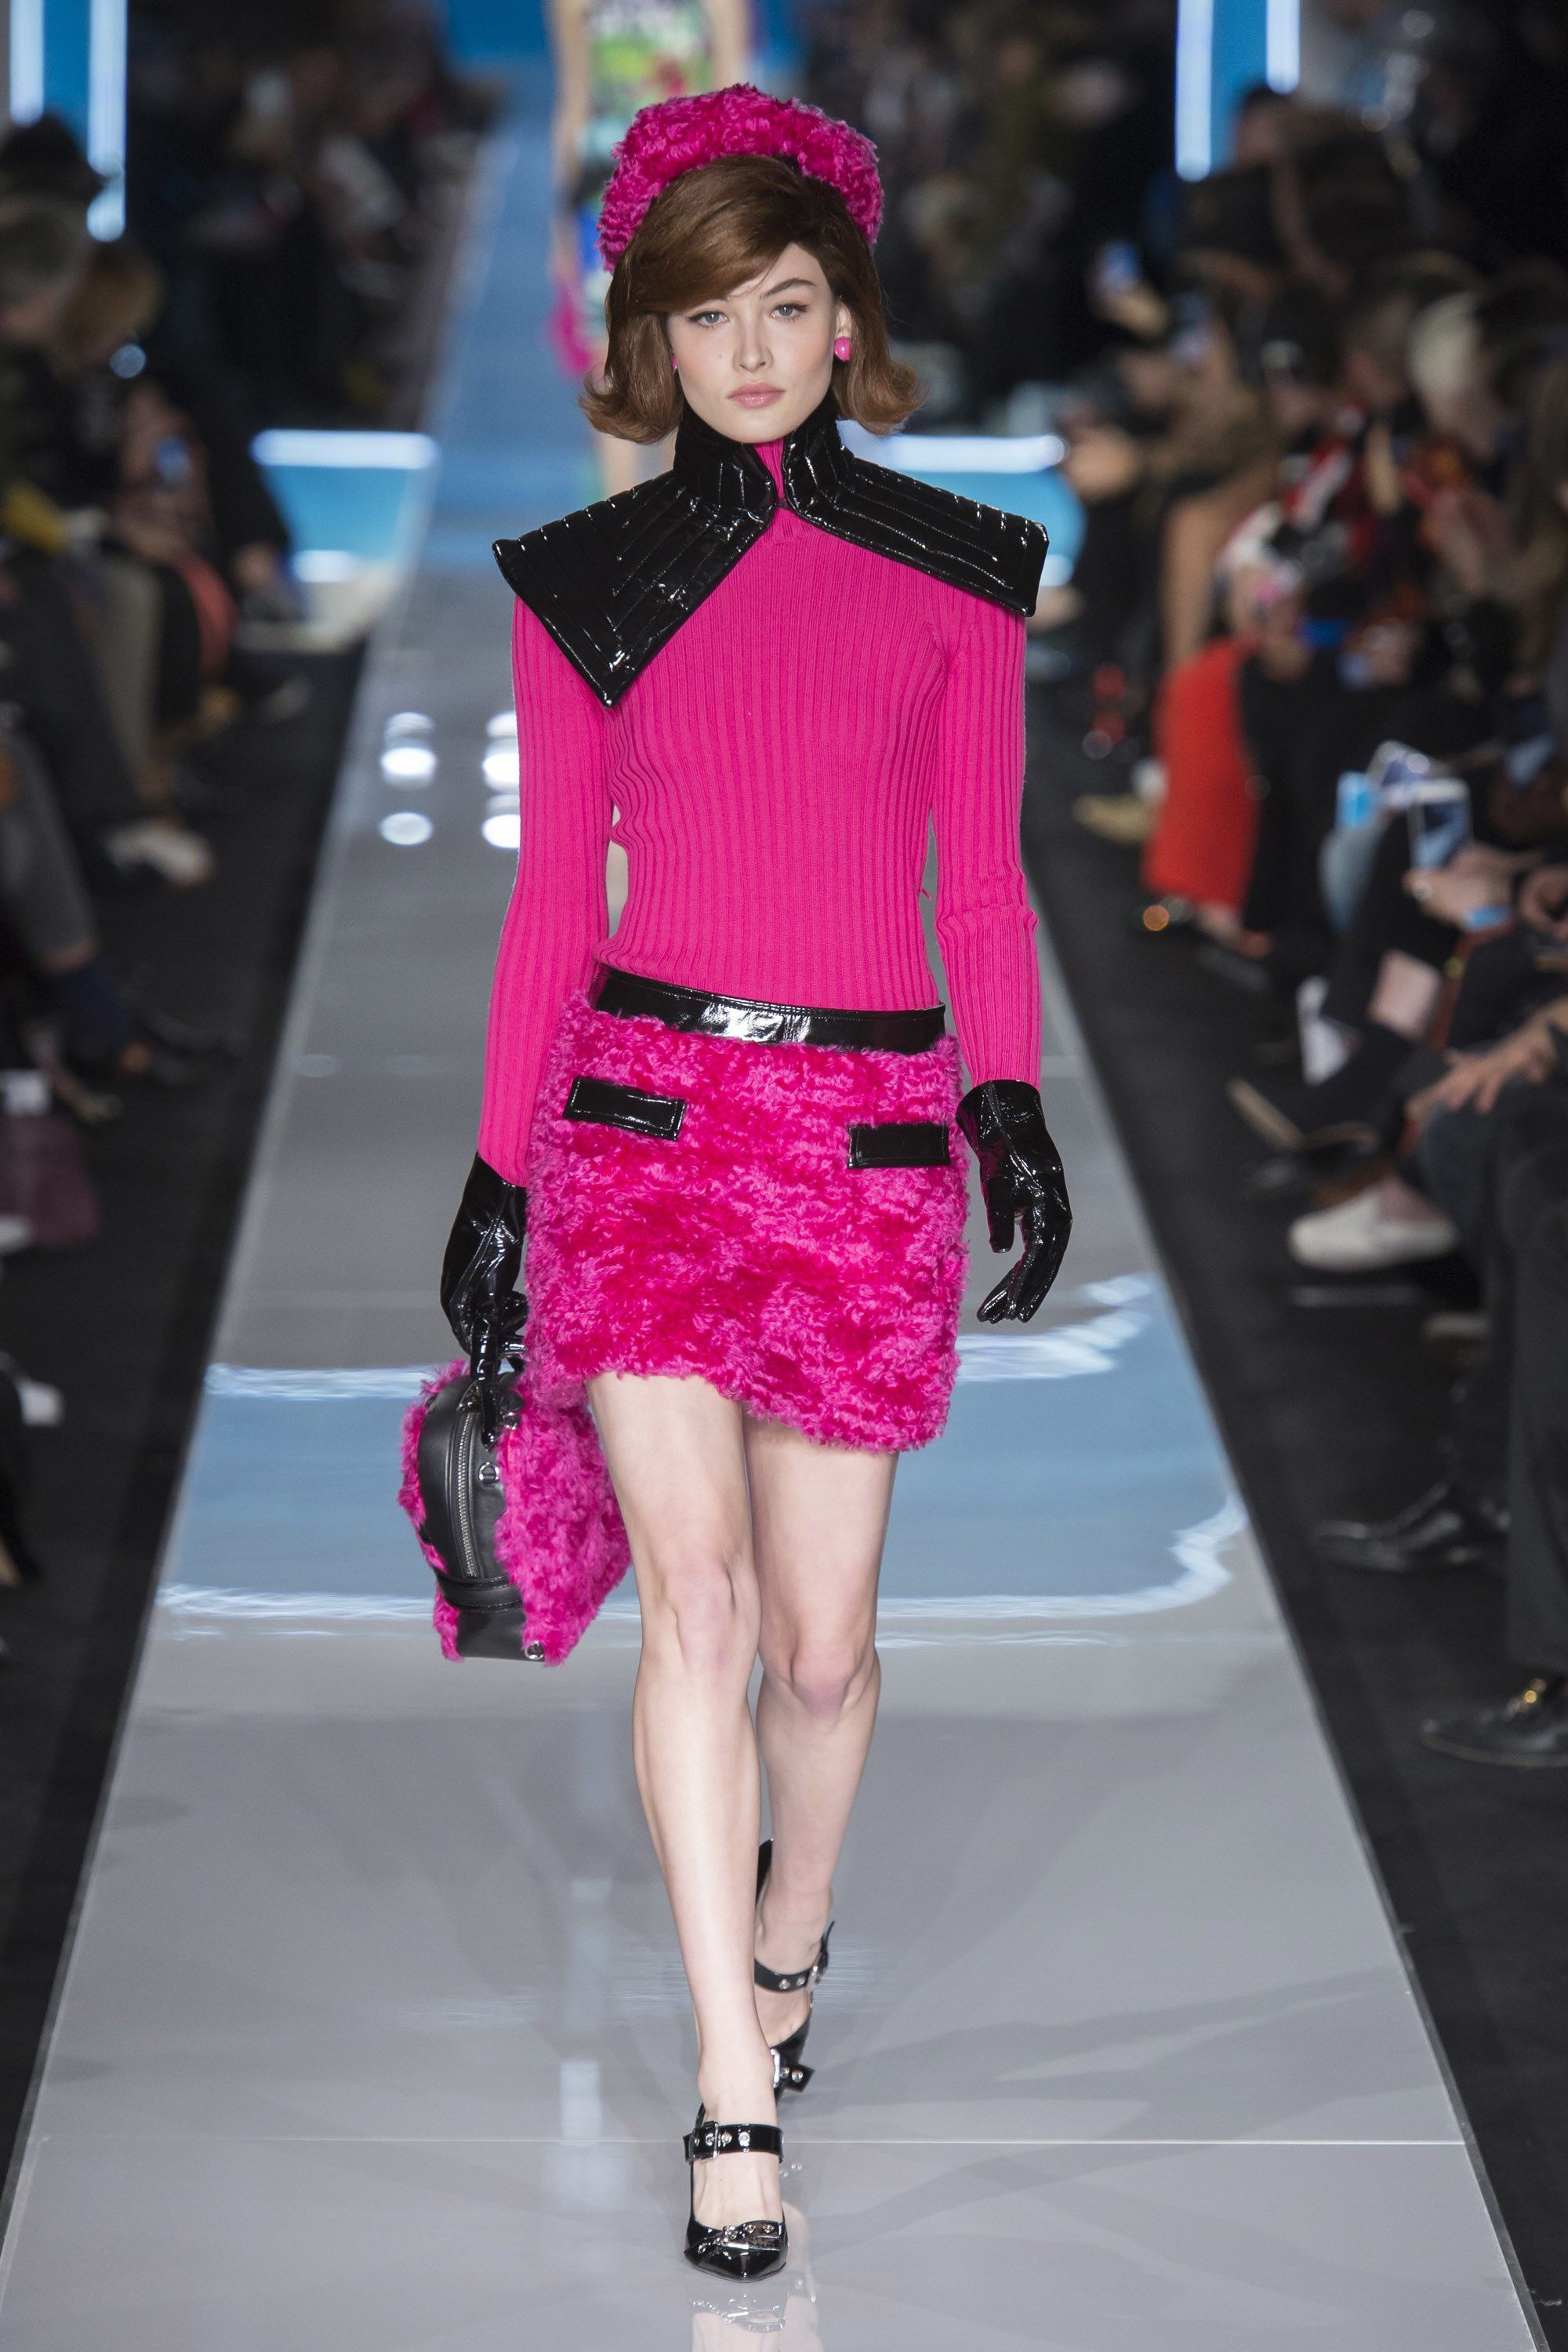 The complete Moschino Fall 2018 Ready-to-Wear fashion show